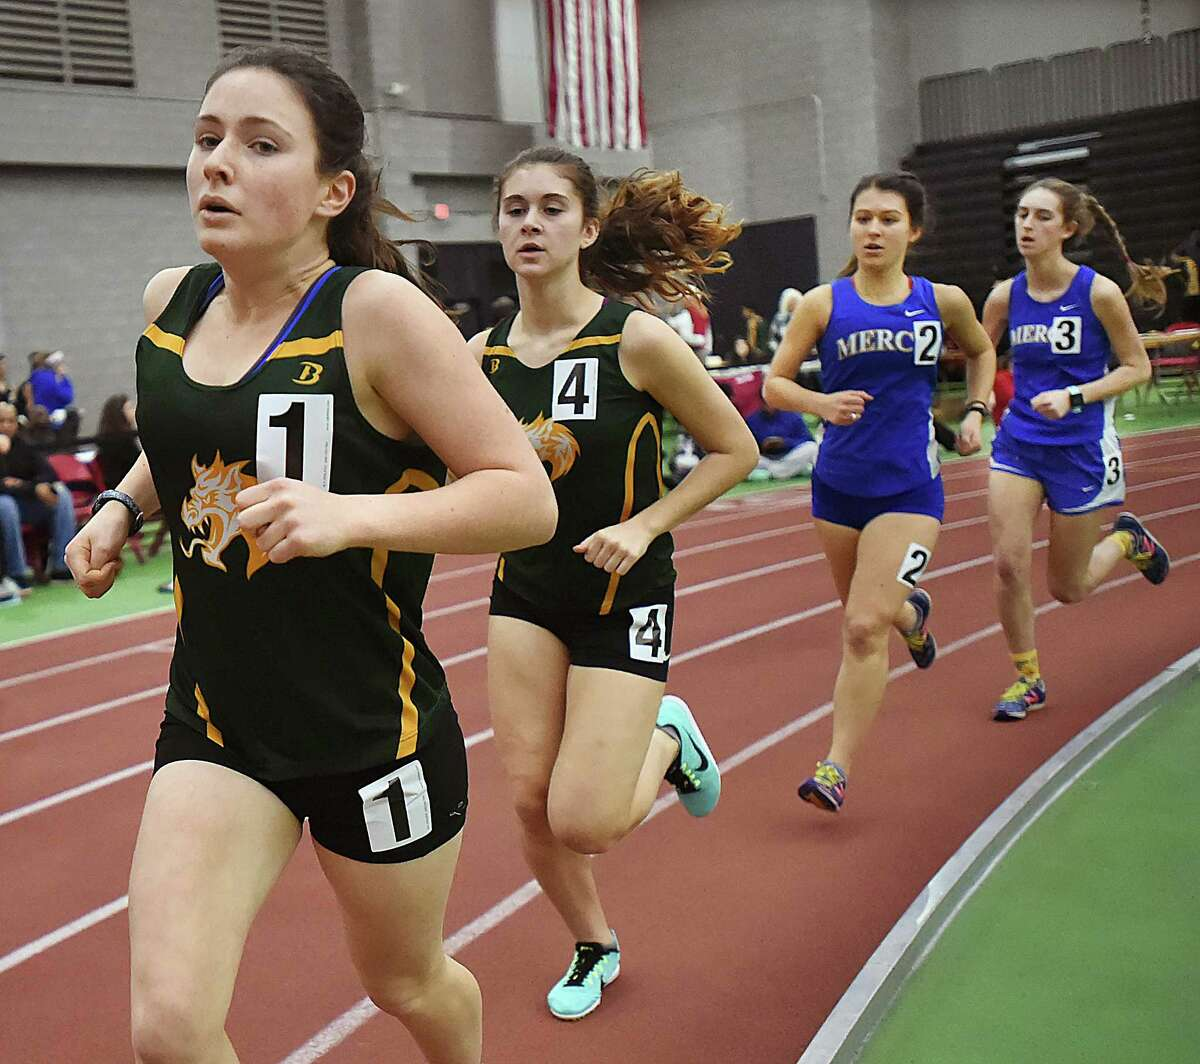 Hamden sophomore Ella Bradford, wearing #1, won the 1600 meter run in 5:45.61 at the SCC West Sectional indoor track and field meet, Tuesday, Jan. 23, 2018, at Floyd Little Athletic Center in Ne5:54.60. Placing second in 5:25.85, Hamden senior Jackie Theroux wearing #4, finishishing in third in 5:49.67 is Mercy junior Mae Grochowski wearing #2 and fourth place finisher is Mercy senior Maeve Williams running a 5:59.24. Hamden girls won the meet.